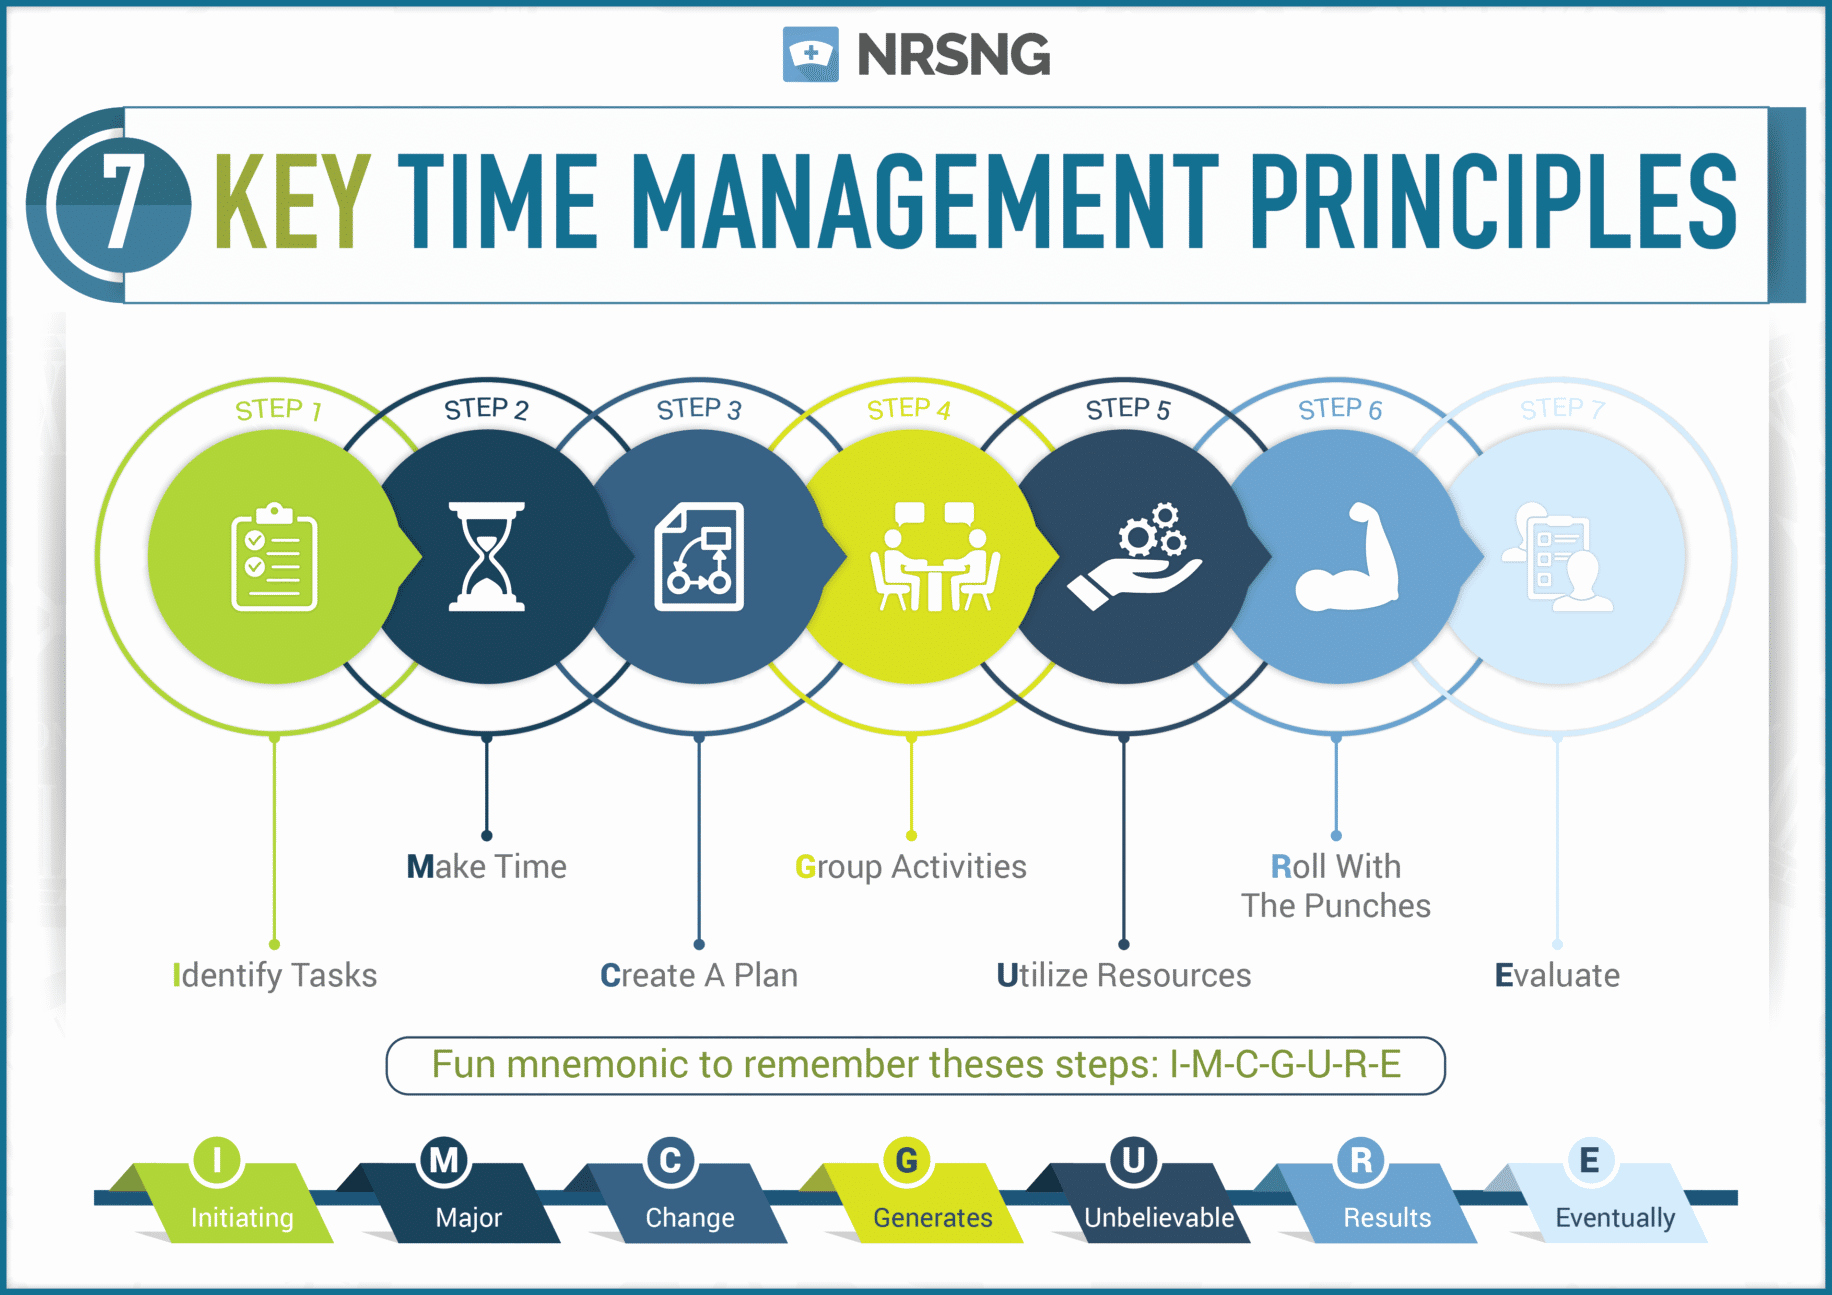 Nursing Time Management Sheet Awesome Infographic 7 Key Time Management Principles